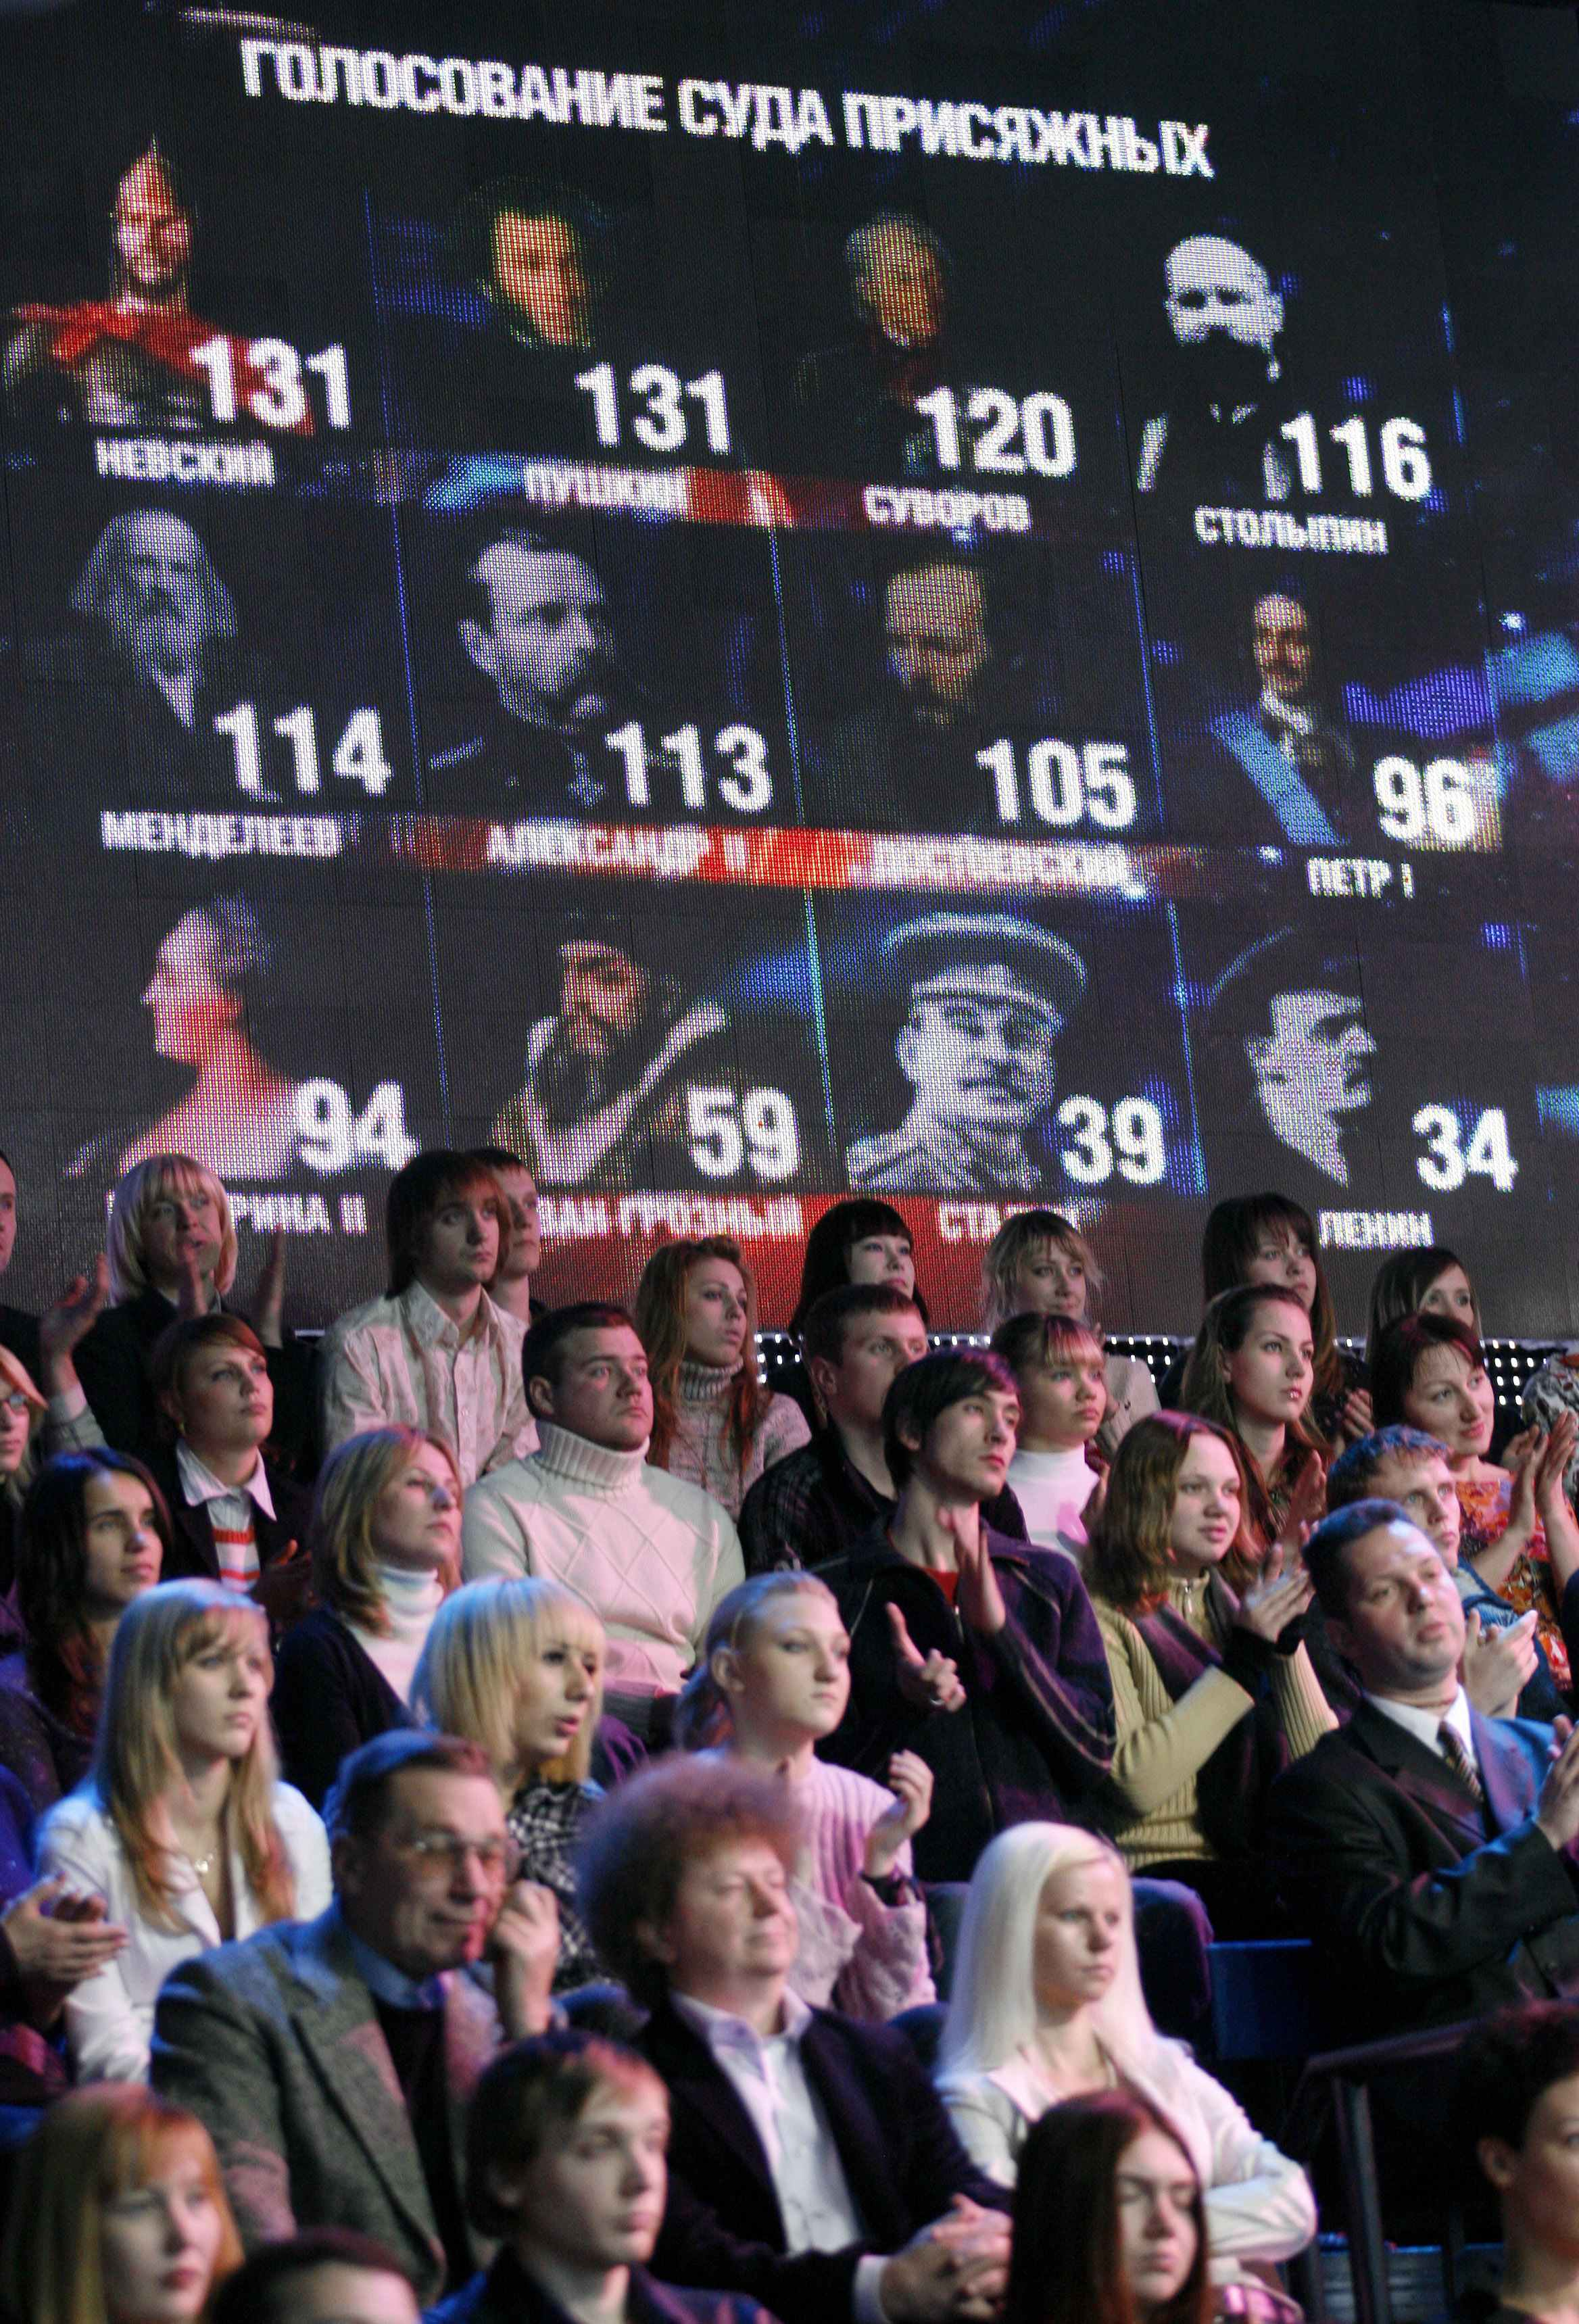 People attend 'Imya Rossiya' ('Name Russia') TV show in Moscow, Russia on Saturday.